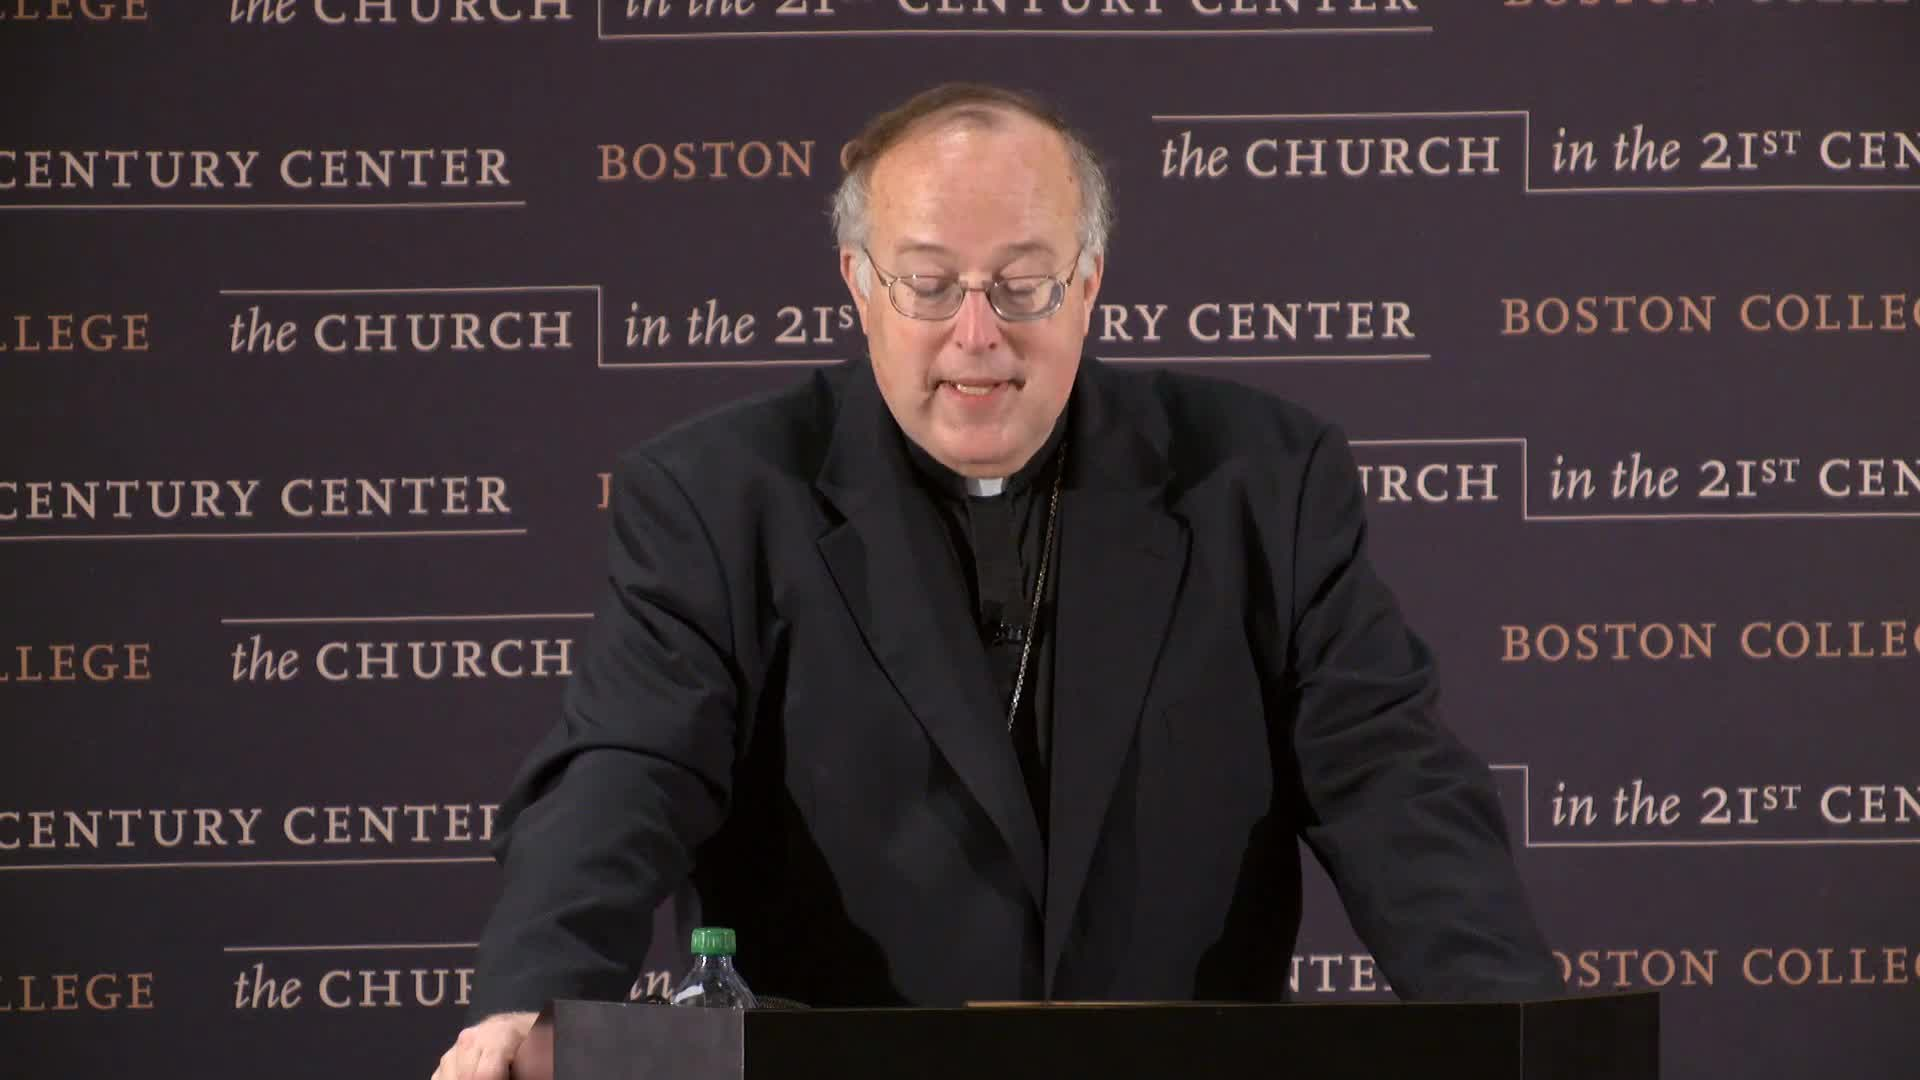 The challenge of Catholic teaching on war and peace in the present moment